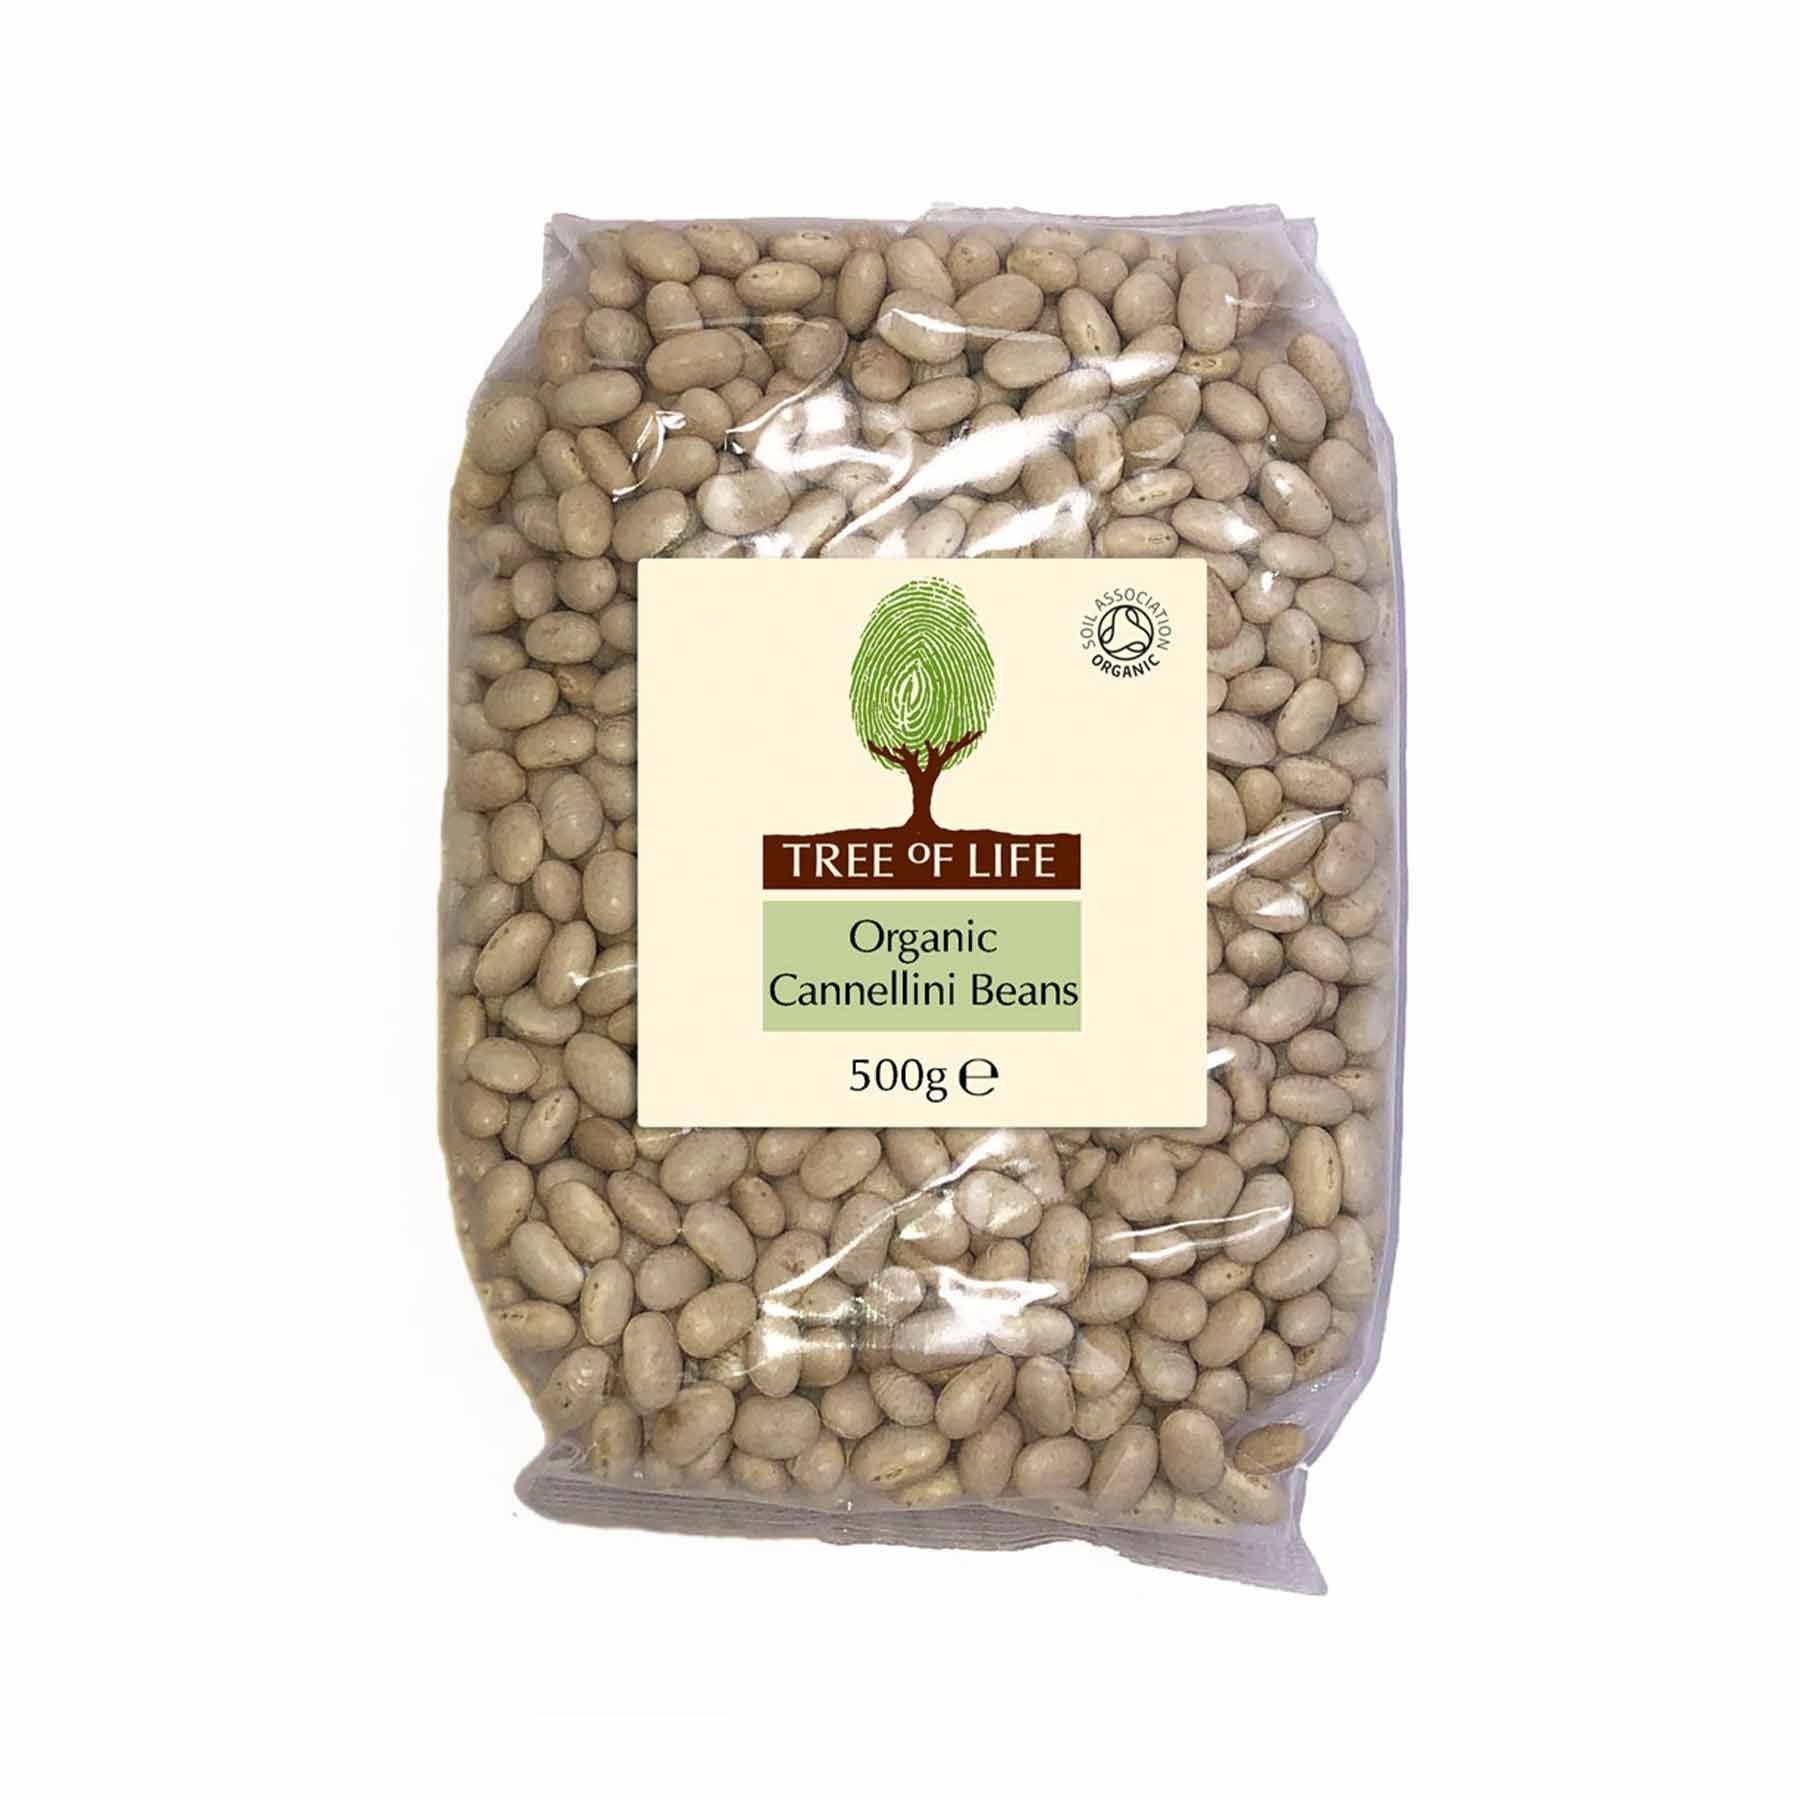 Packshot - Organic Cannellini Beans by Tree of Life